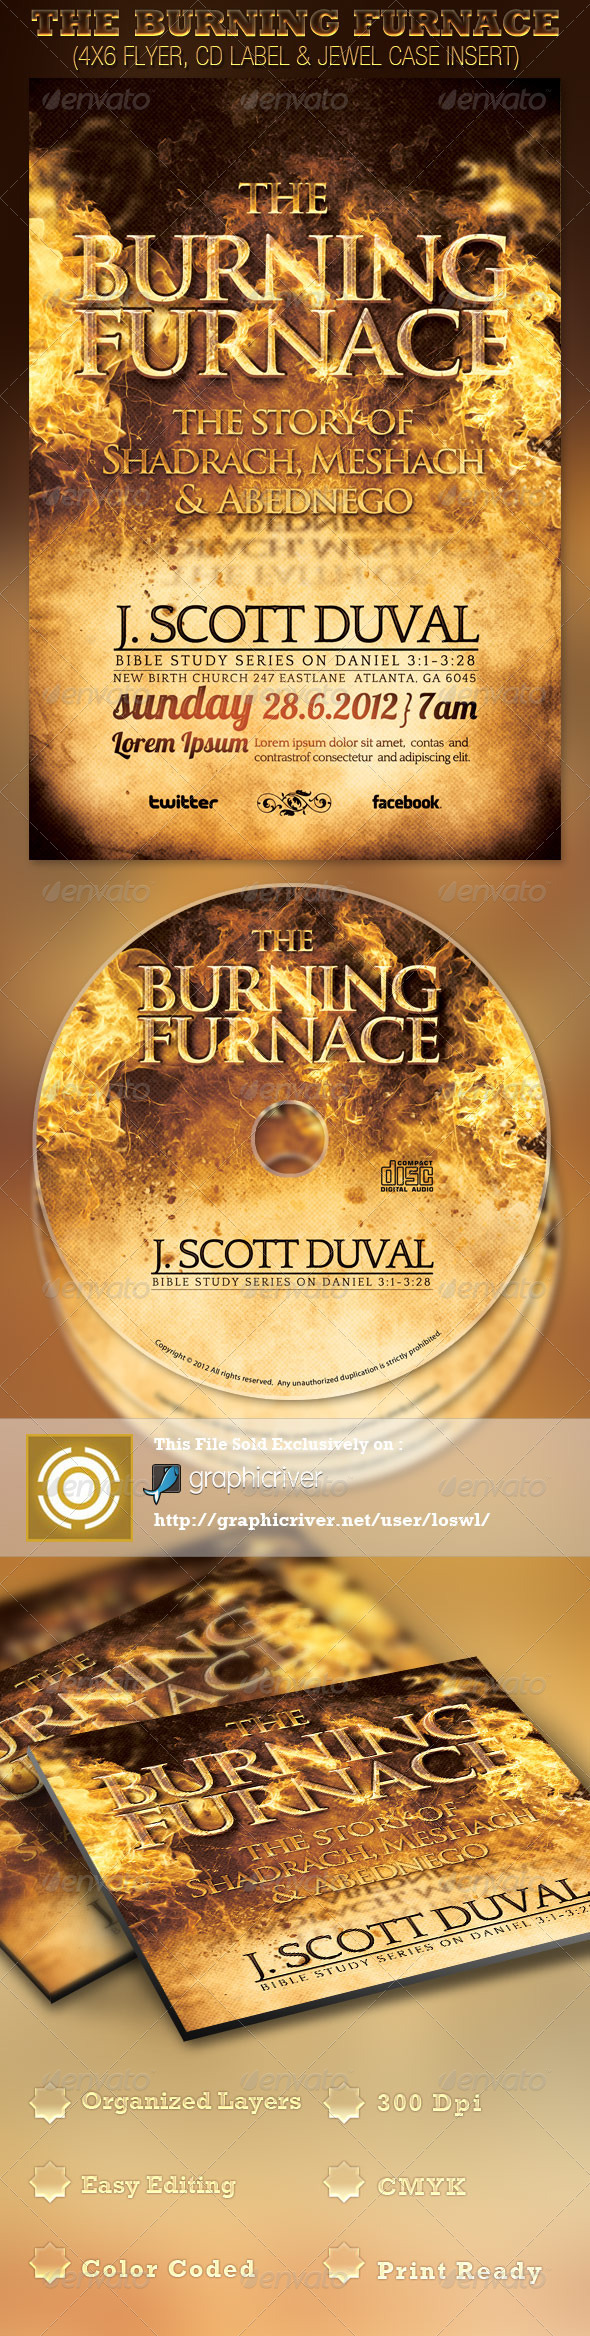 The Burning Furnace Church Flyer and CD Template - Church Flyers